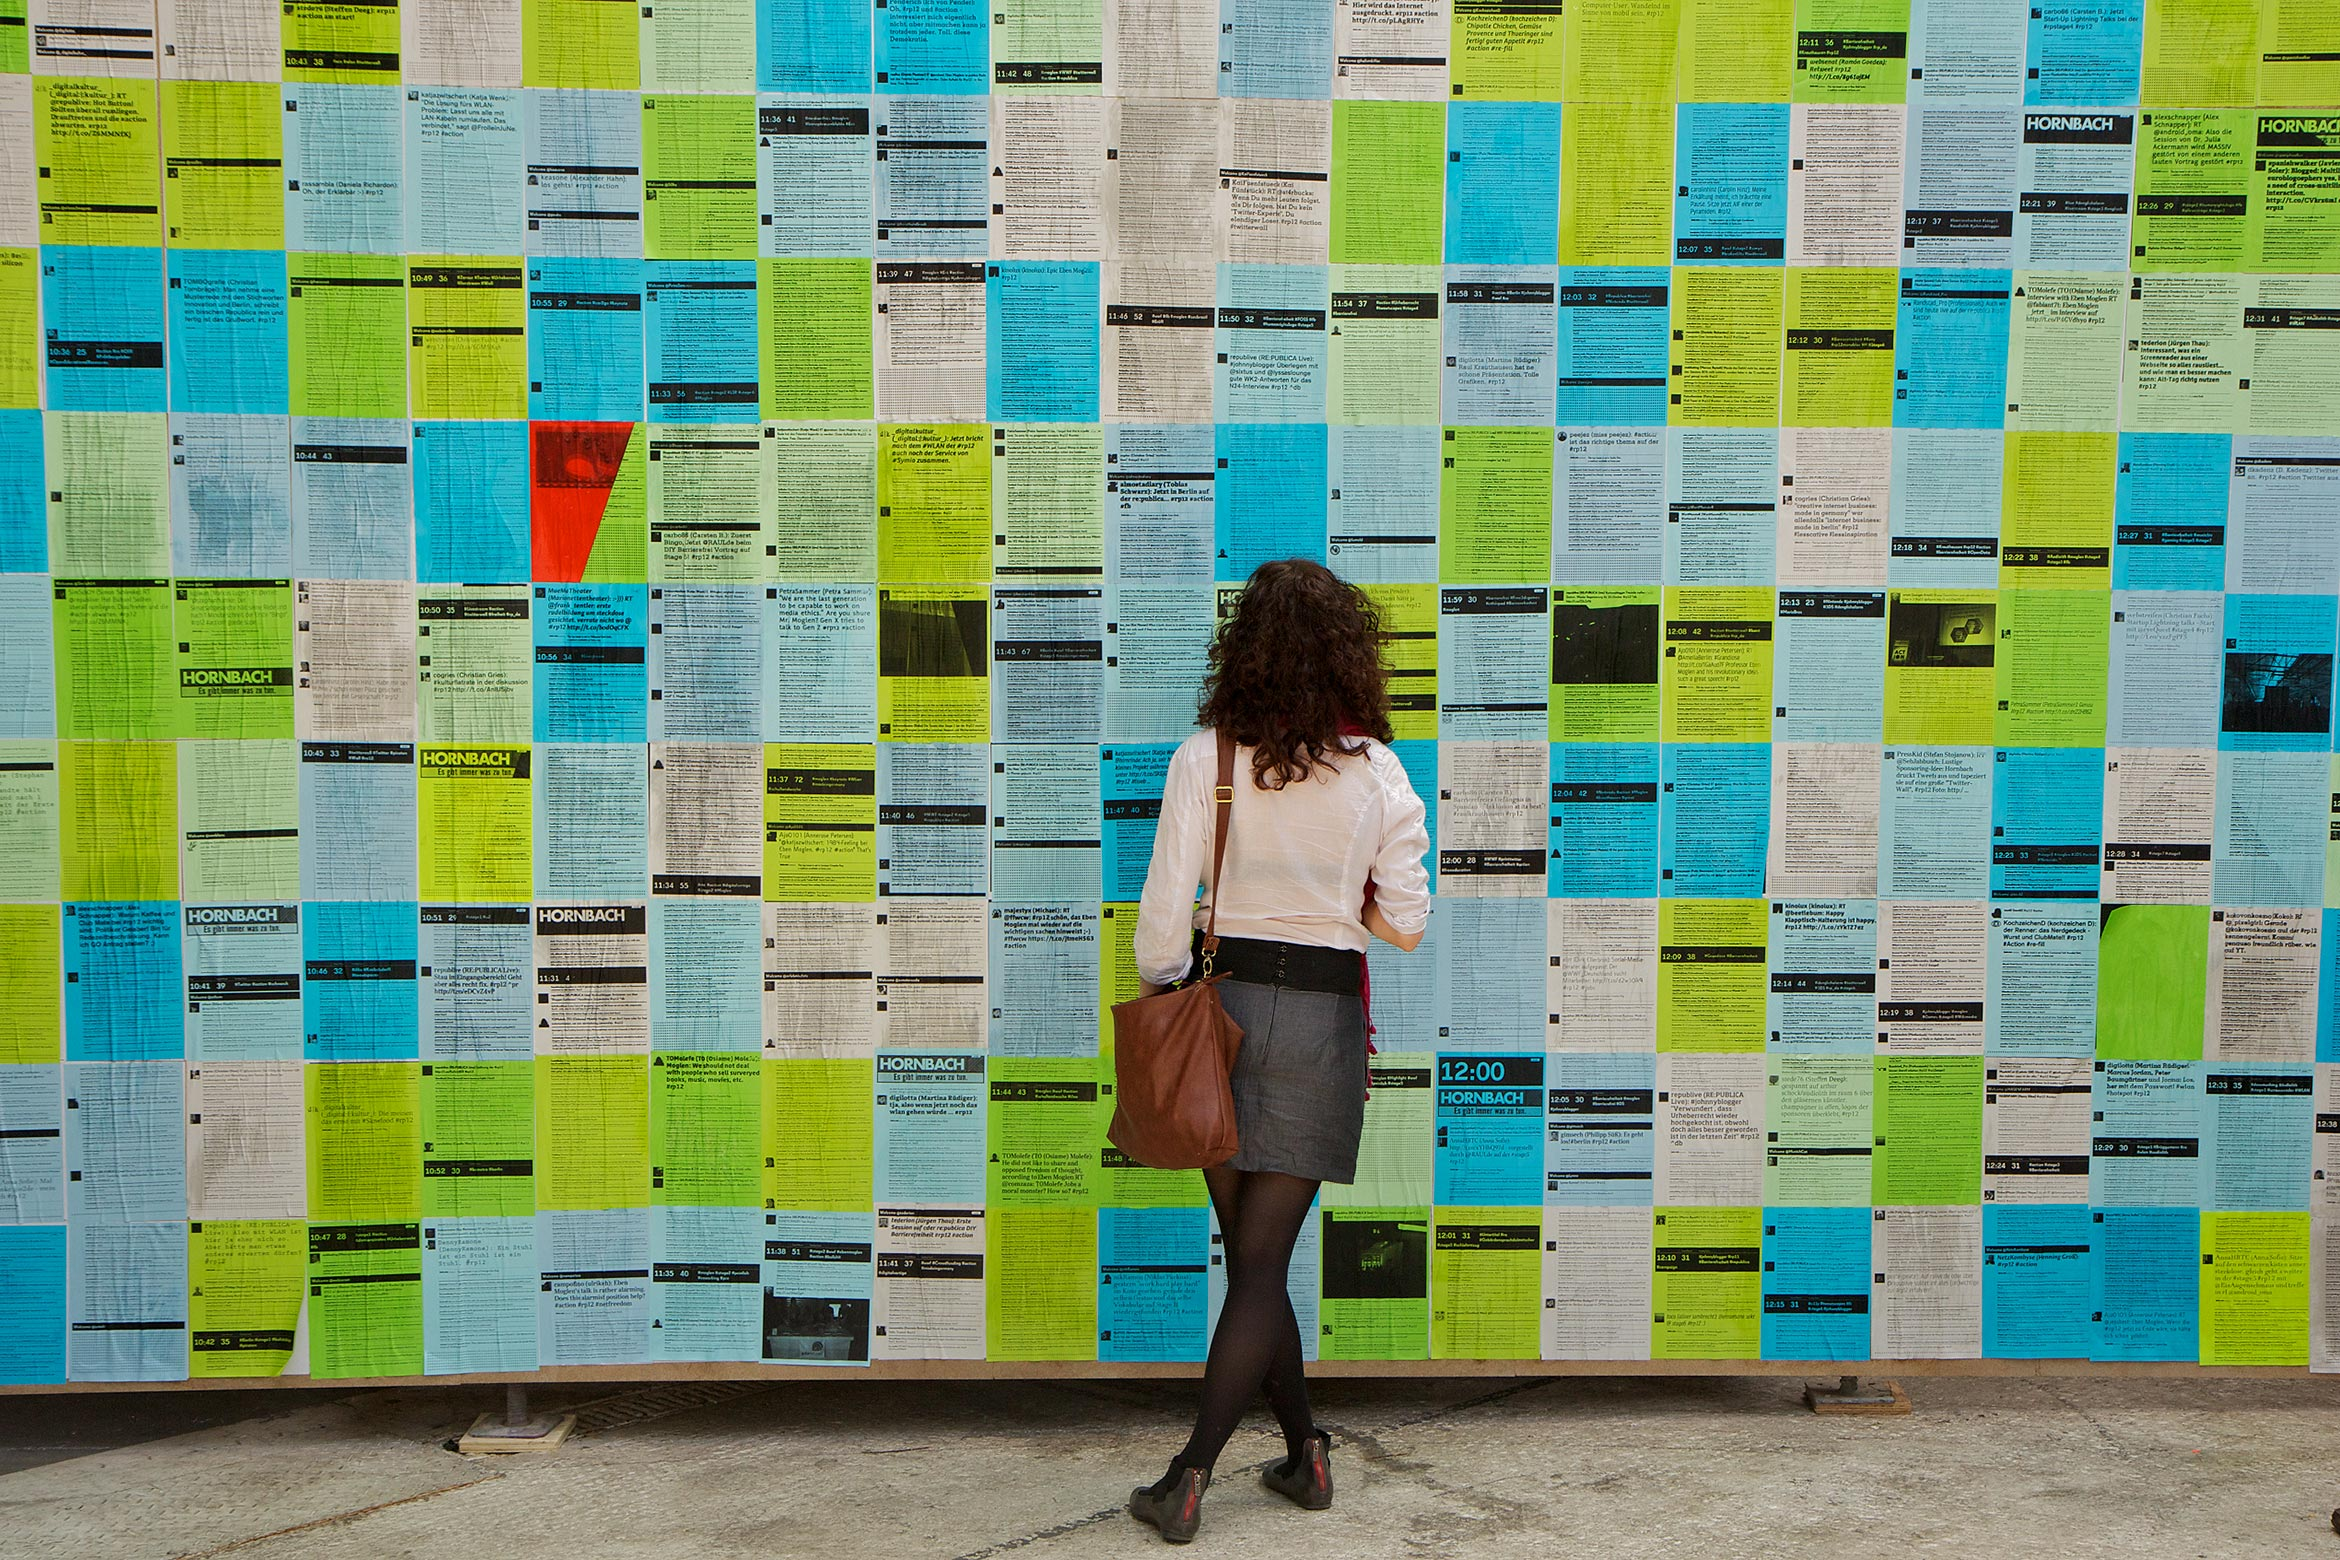 A conference visitor in front of the analog twitter wall reading tweets.